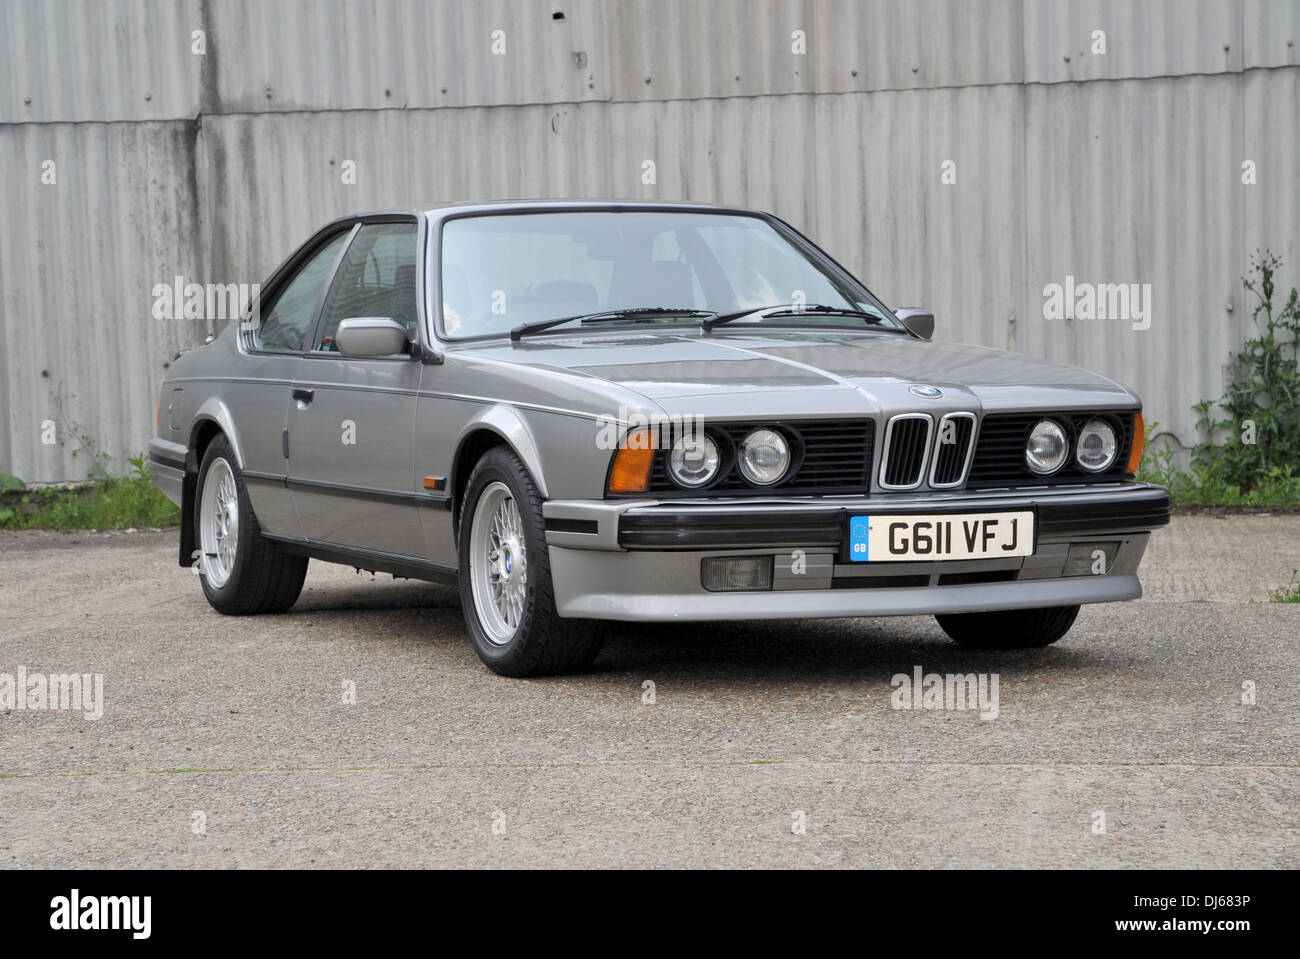 1990 bmw 635 csi classic german sports coupe car stock photo royalty free image 62833002 alamy. Black Bedroom Furniture Sets. Home Design Ideas